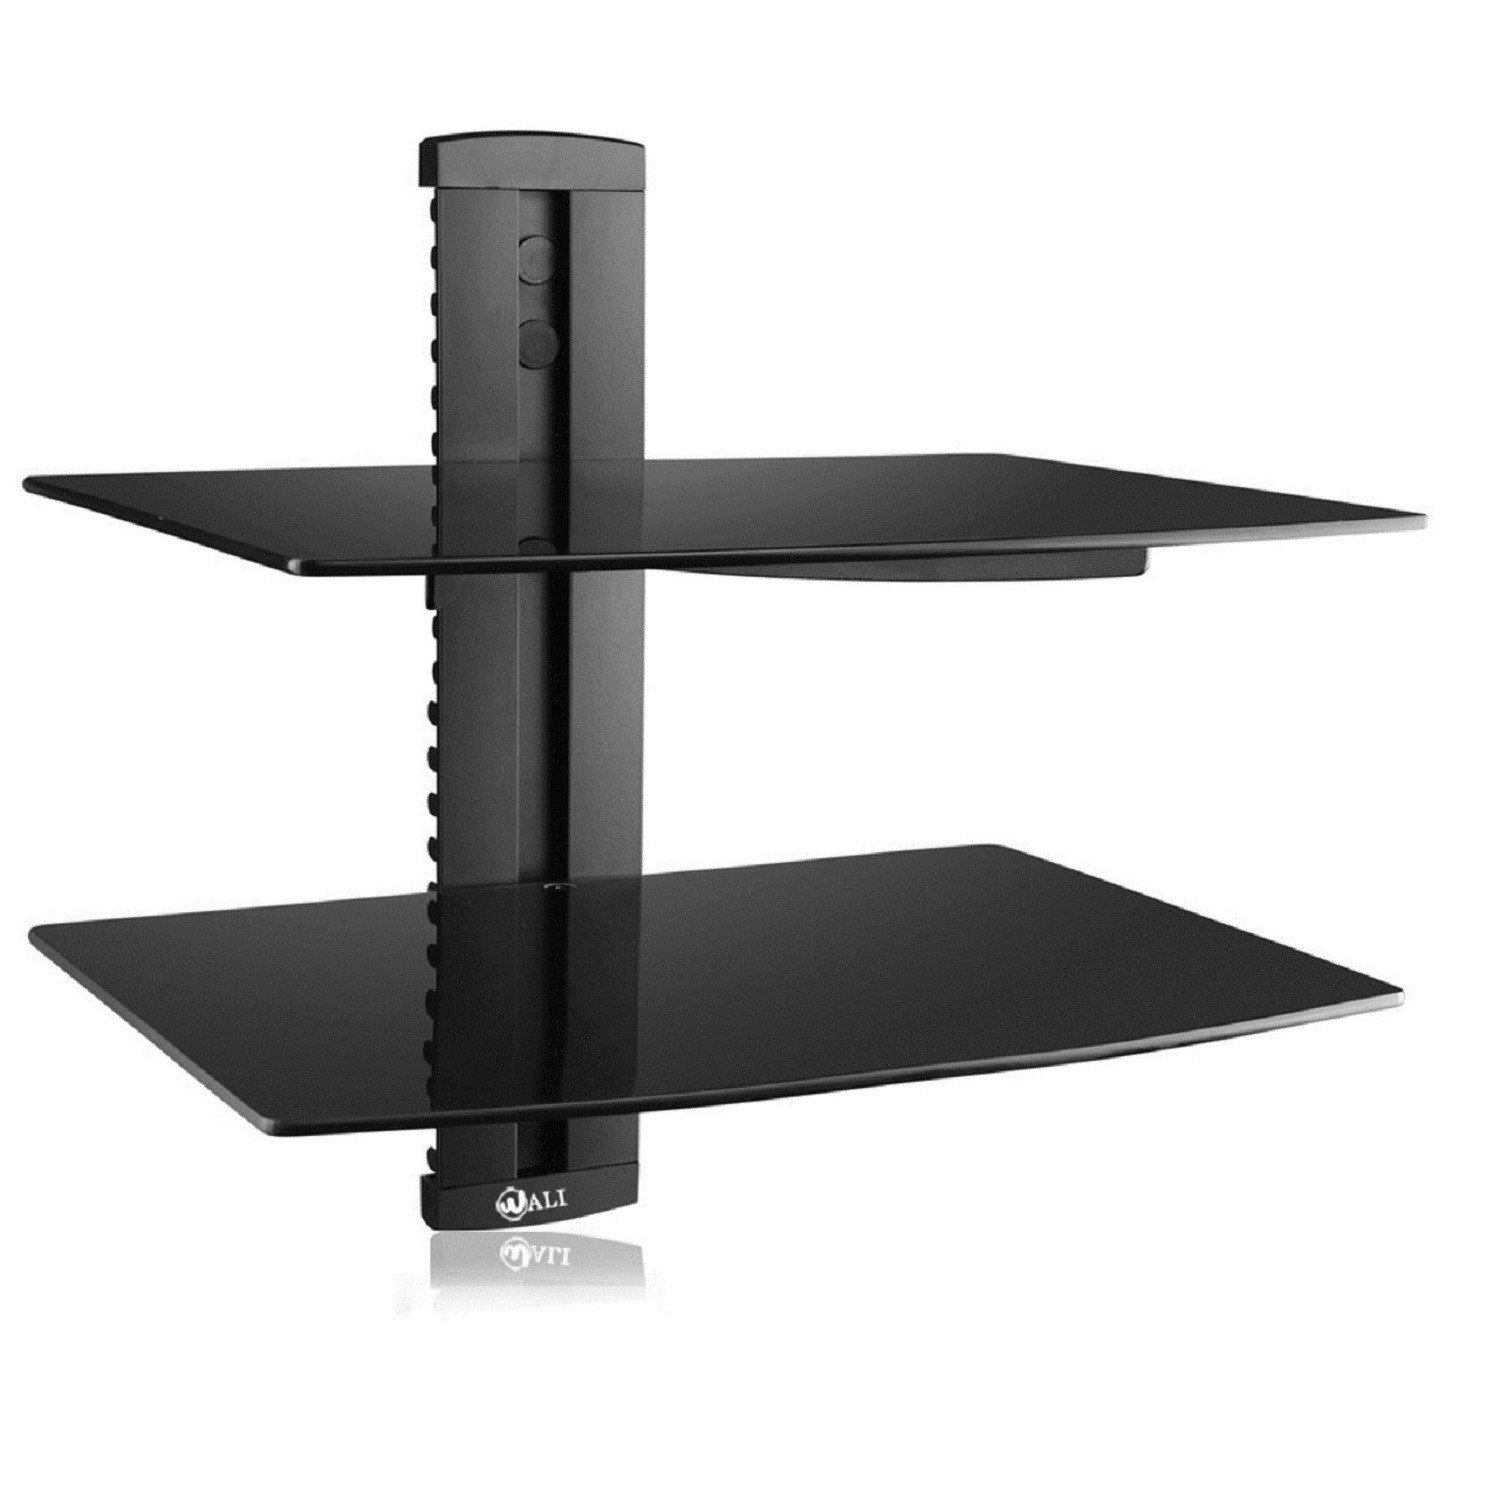 floating shelf with strengthened tempered glass for cable boxes shelves game consoles wali dvd players games coat hooks storage cubbies bunnings steel shelving office desk